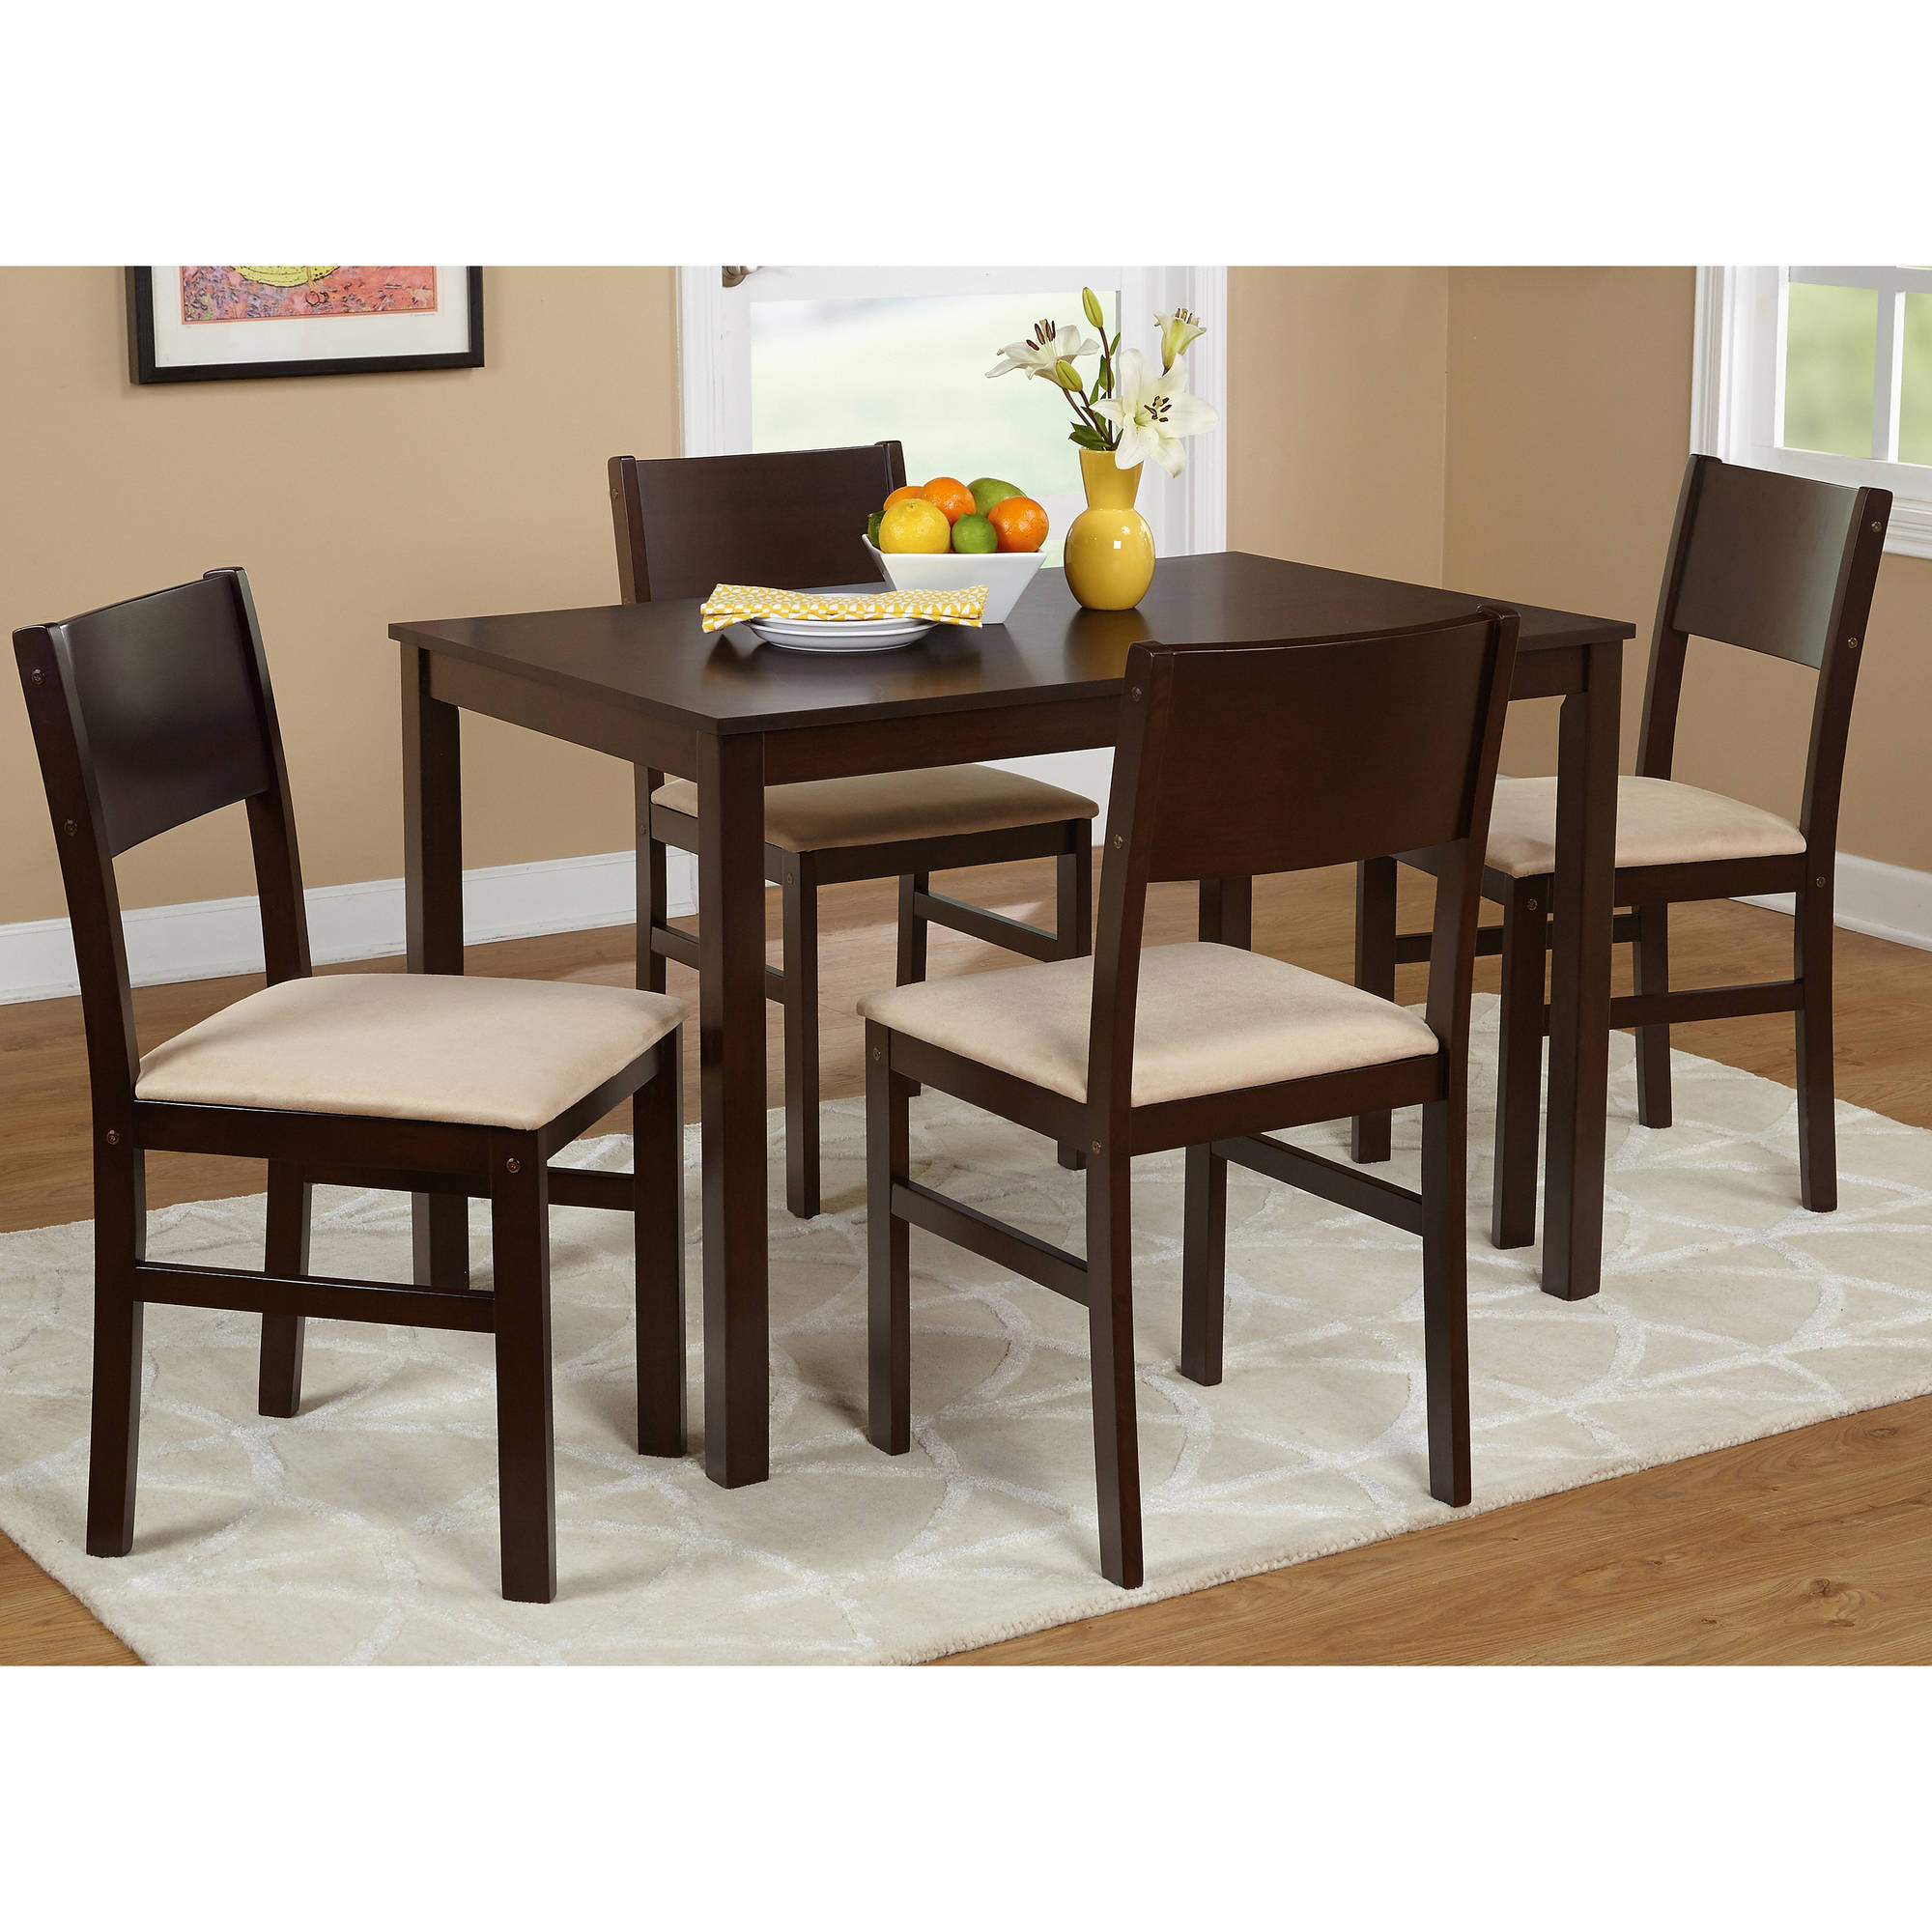 5 Piece Metal Dining Set, Black   Walmart.com